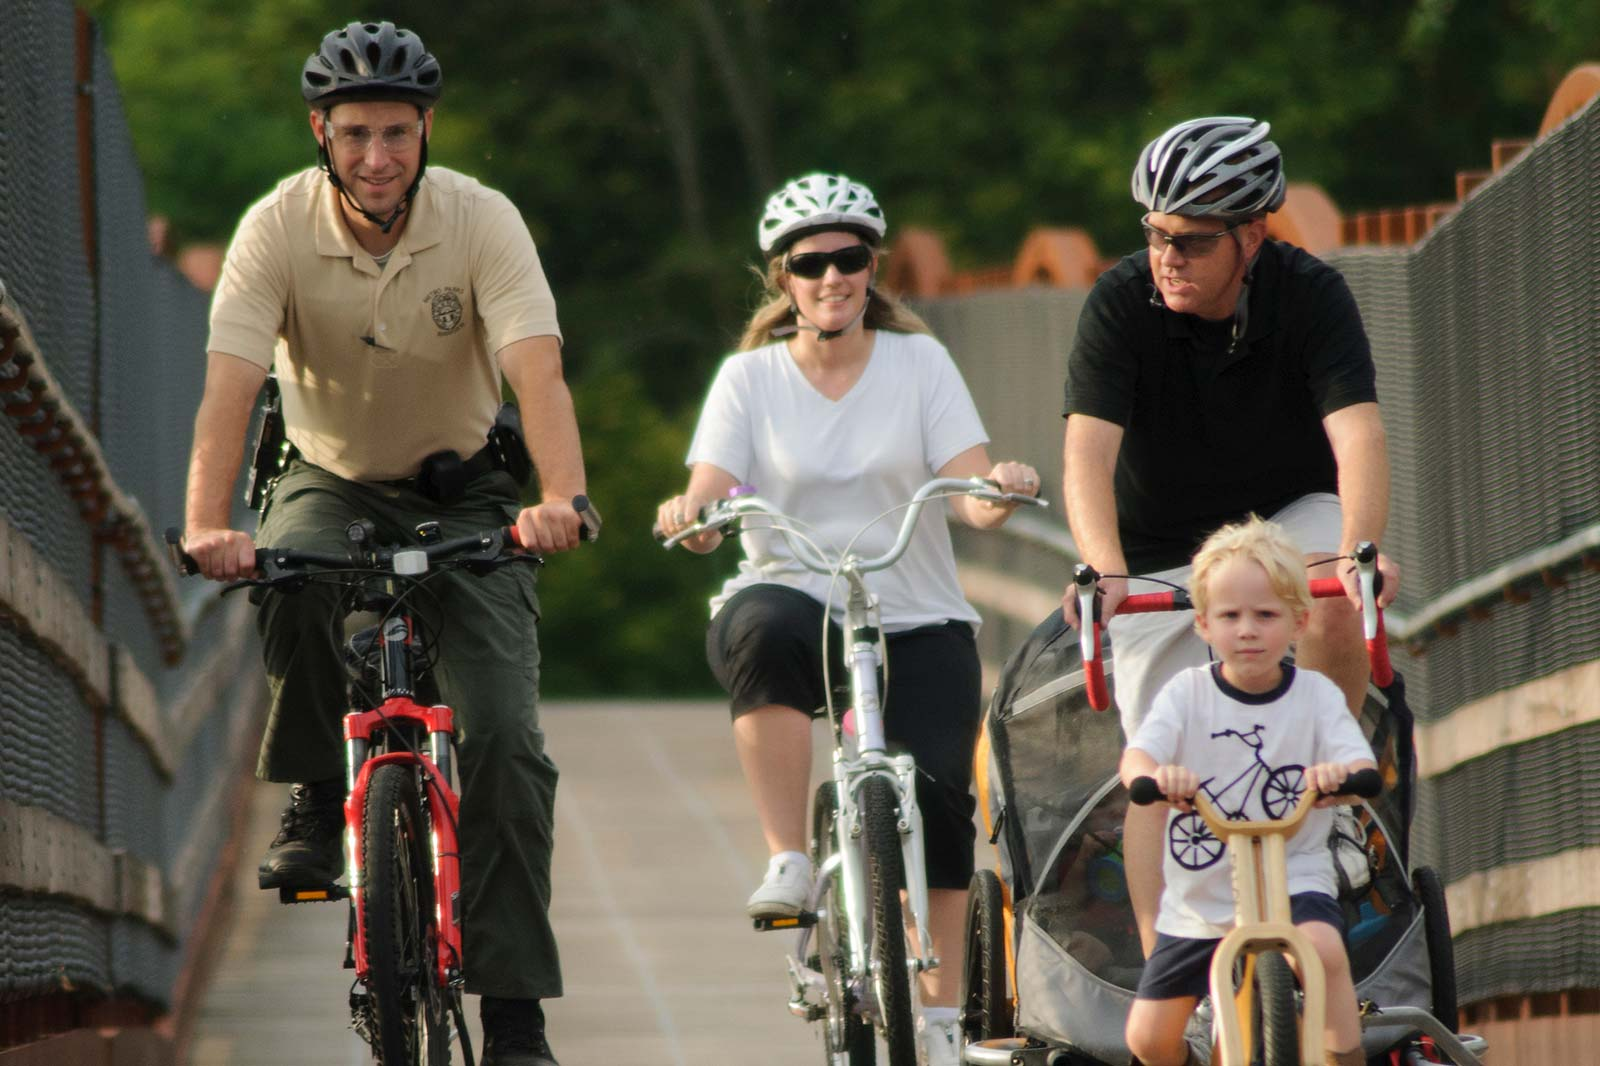 Bikers at Three Creeks at the Family Ride Night program